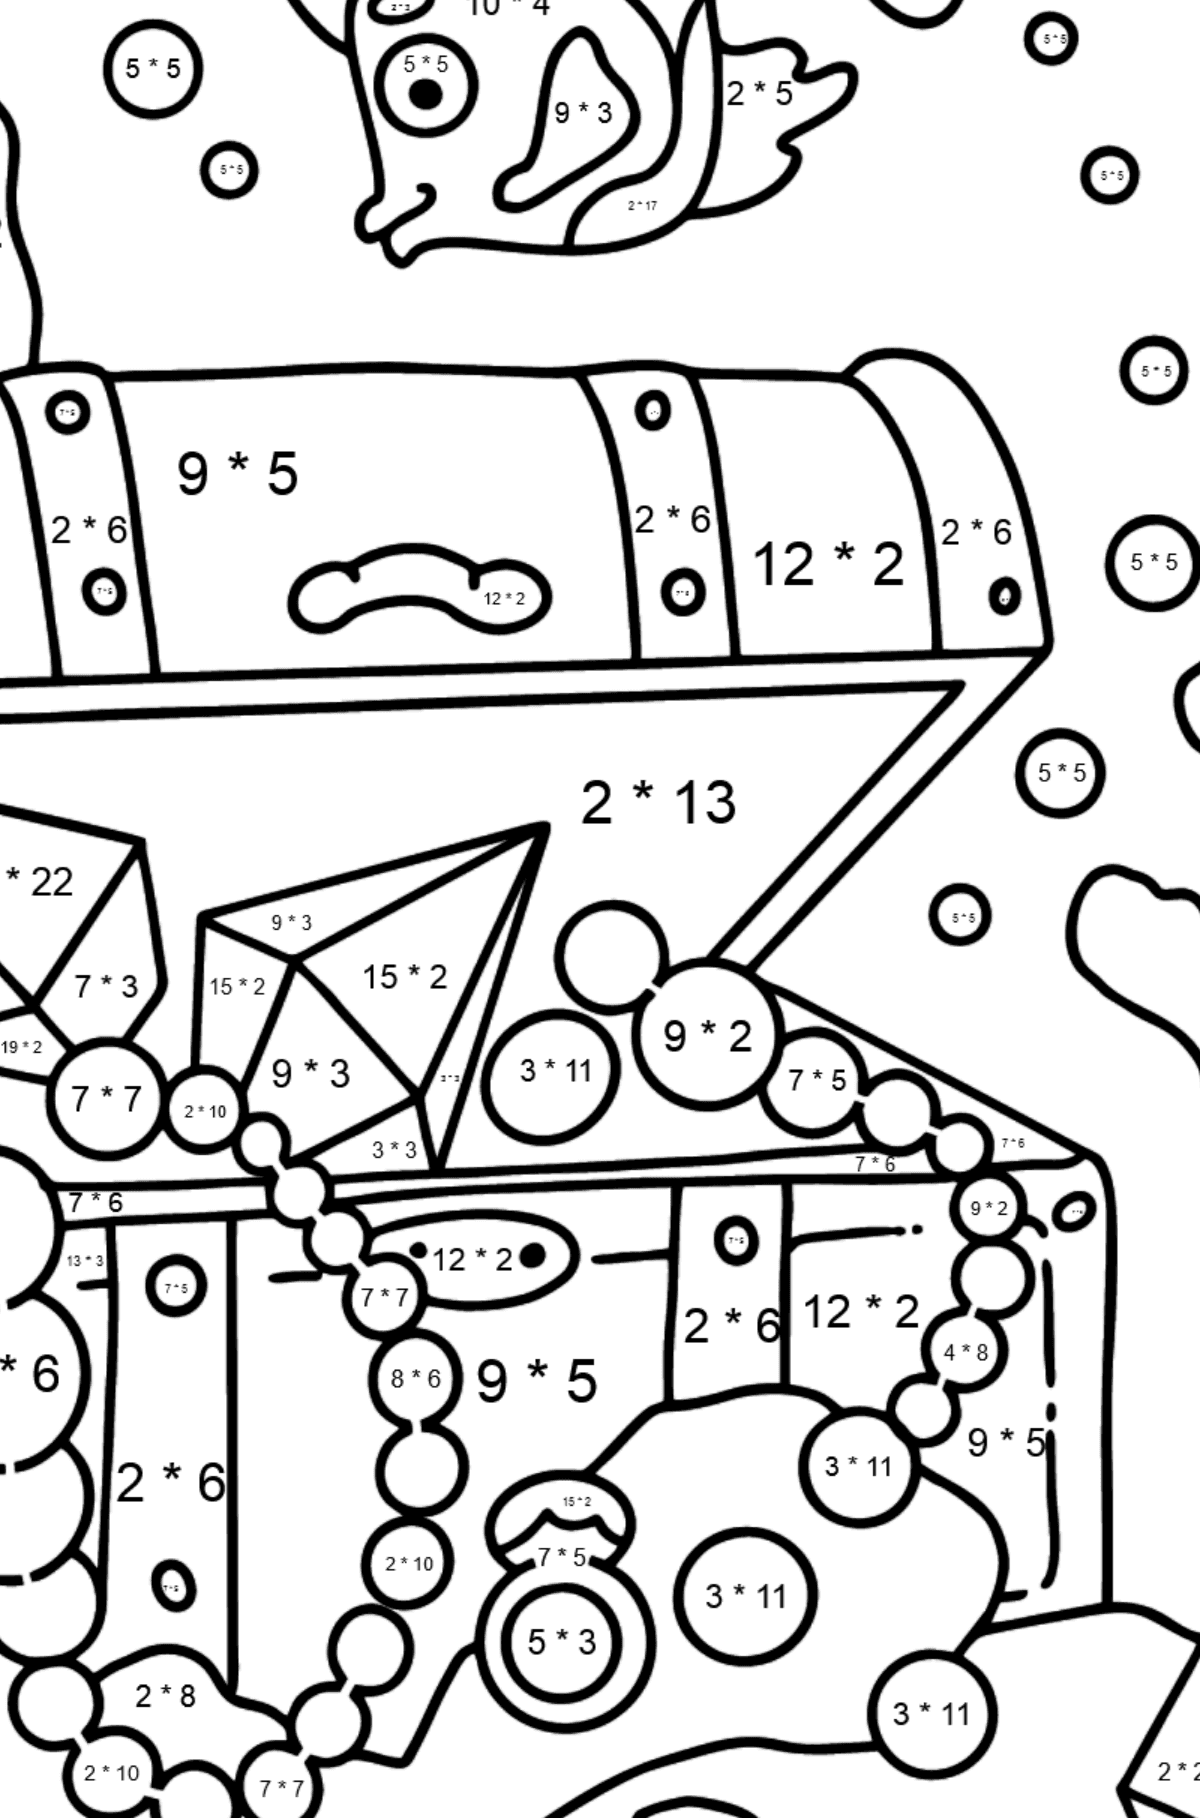 Coloring Page - A Fish is Taking a Peek at a Treasure - Math Coloring - Multiplication for Kids